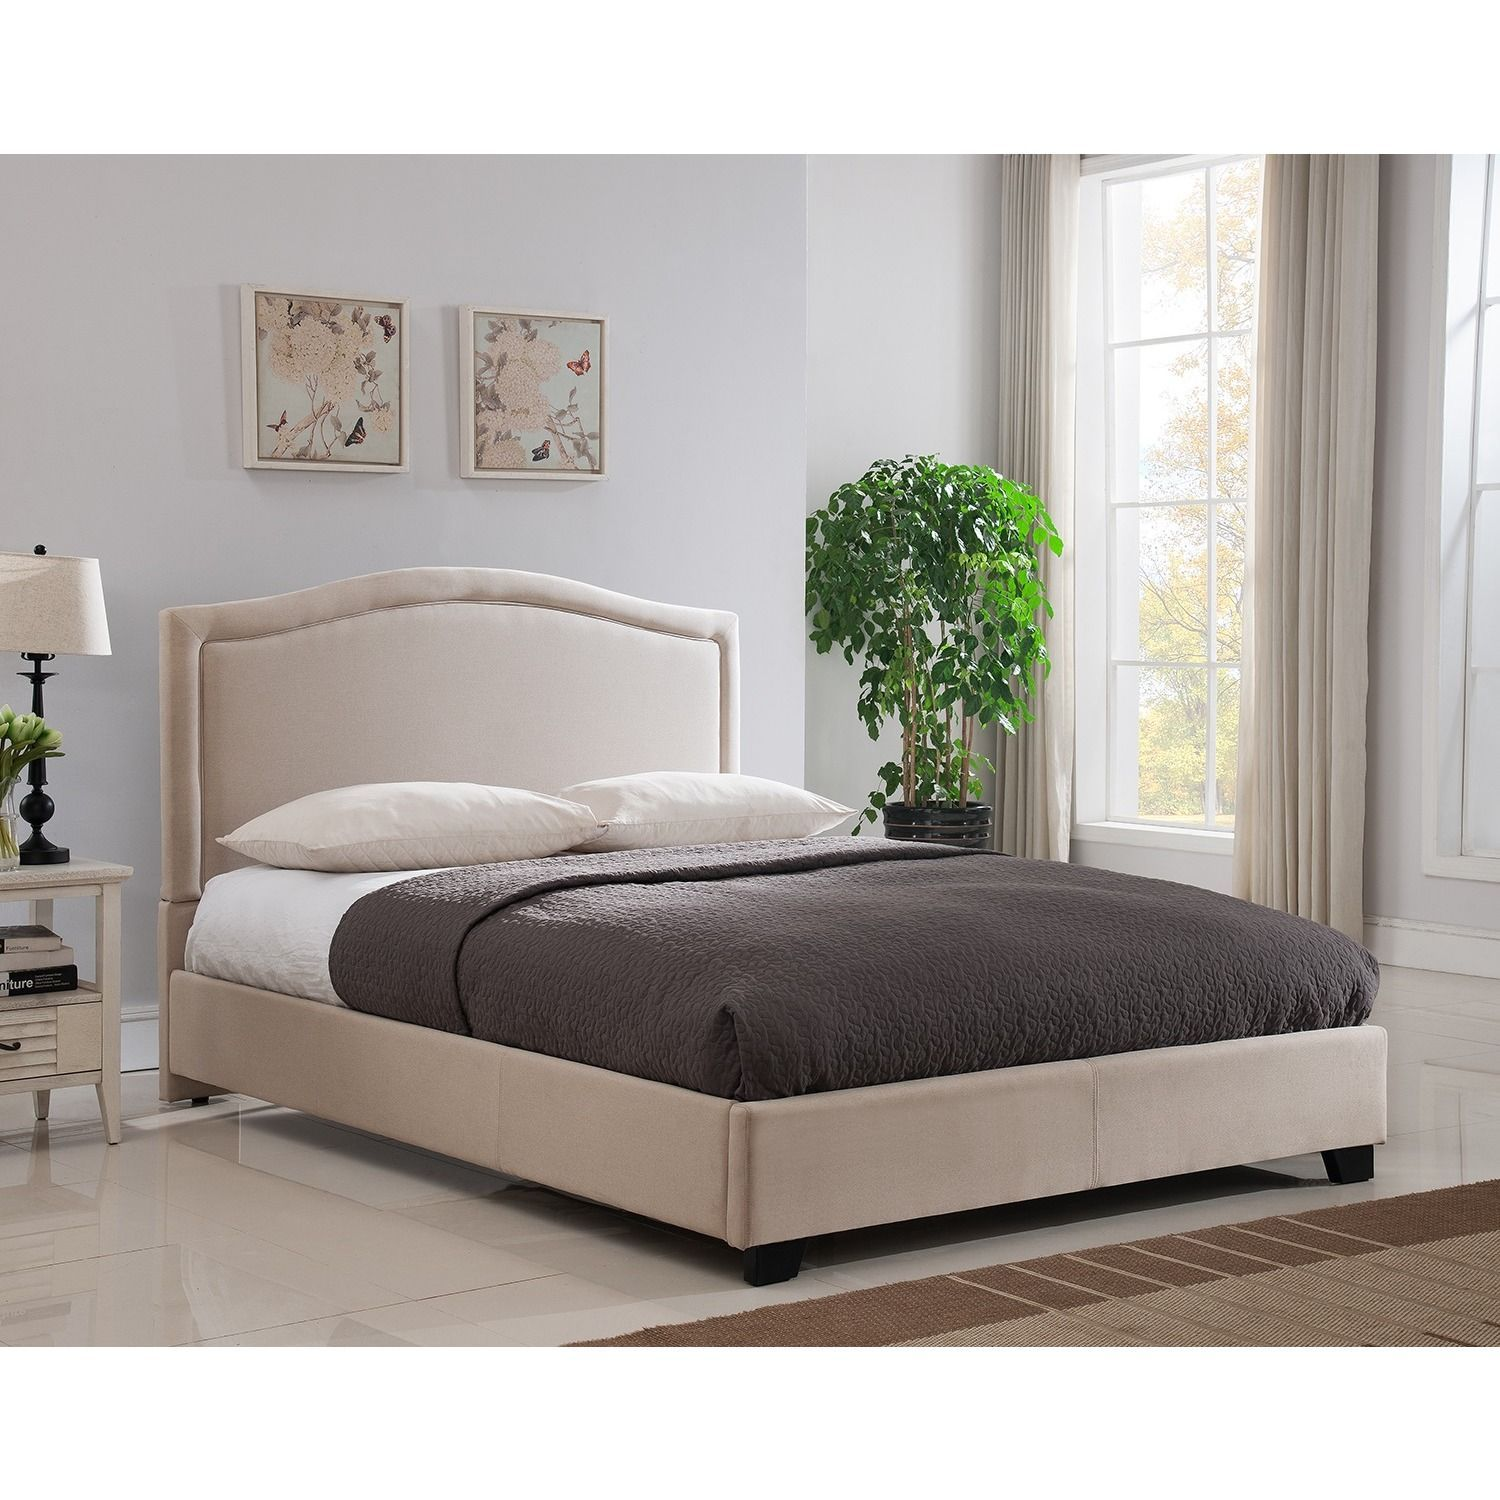 Queen King Deluxe Clamp Style Bed Frame Bed Styling Bed Frame